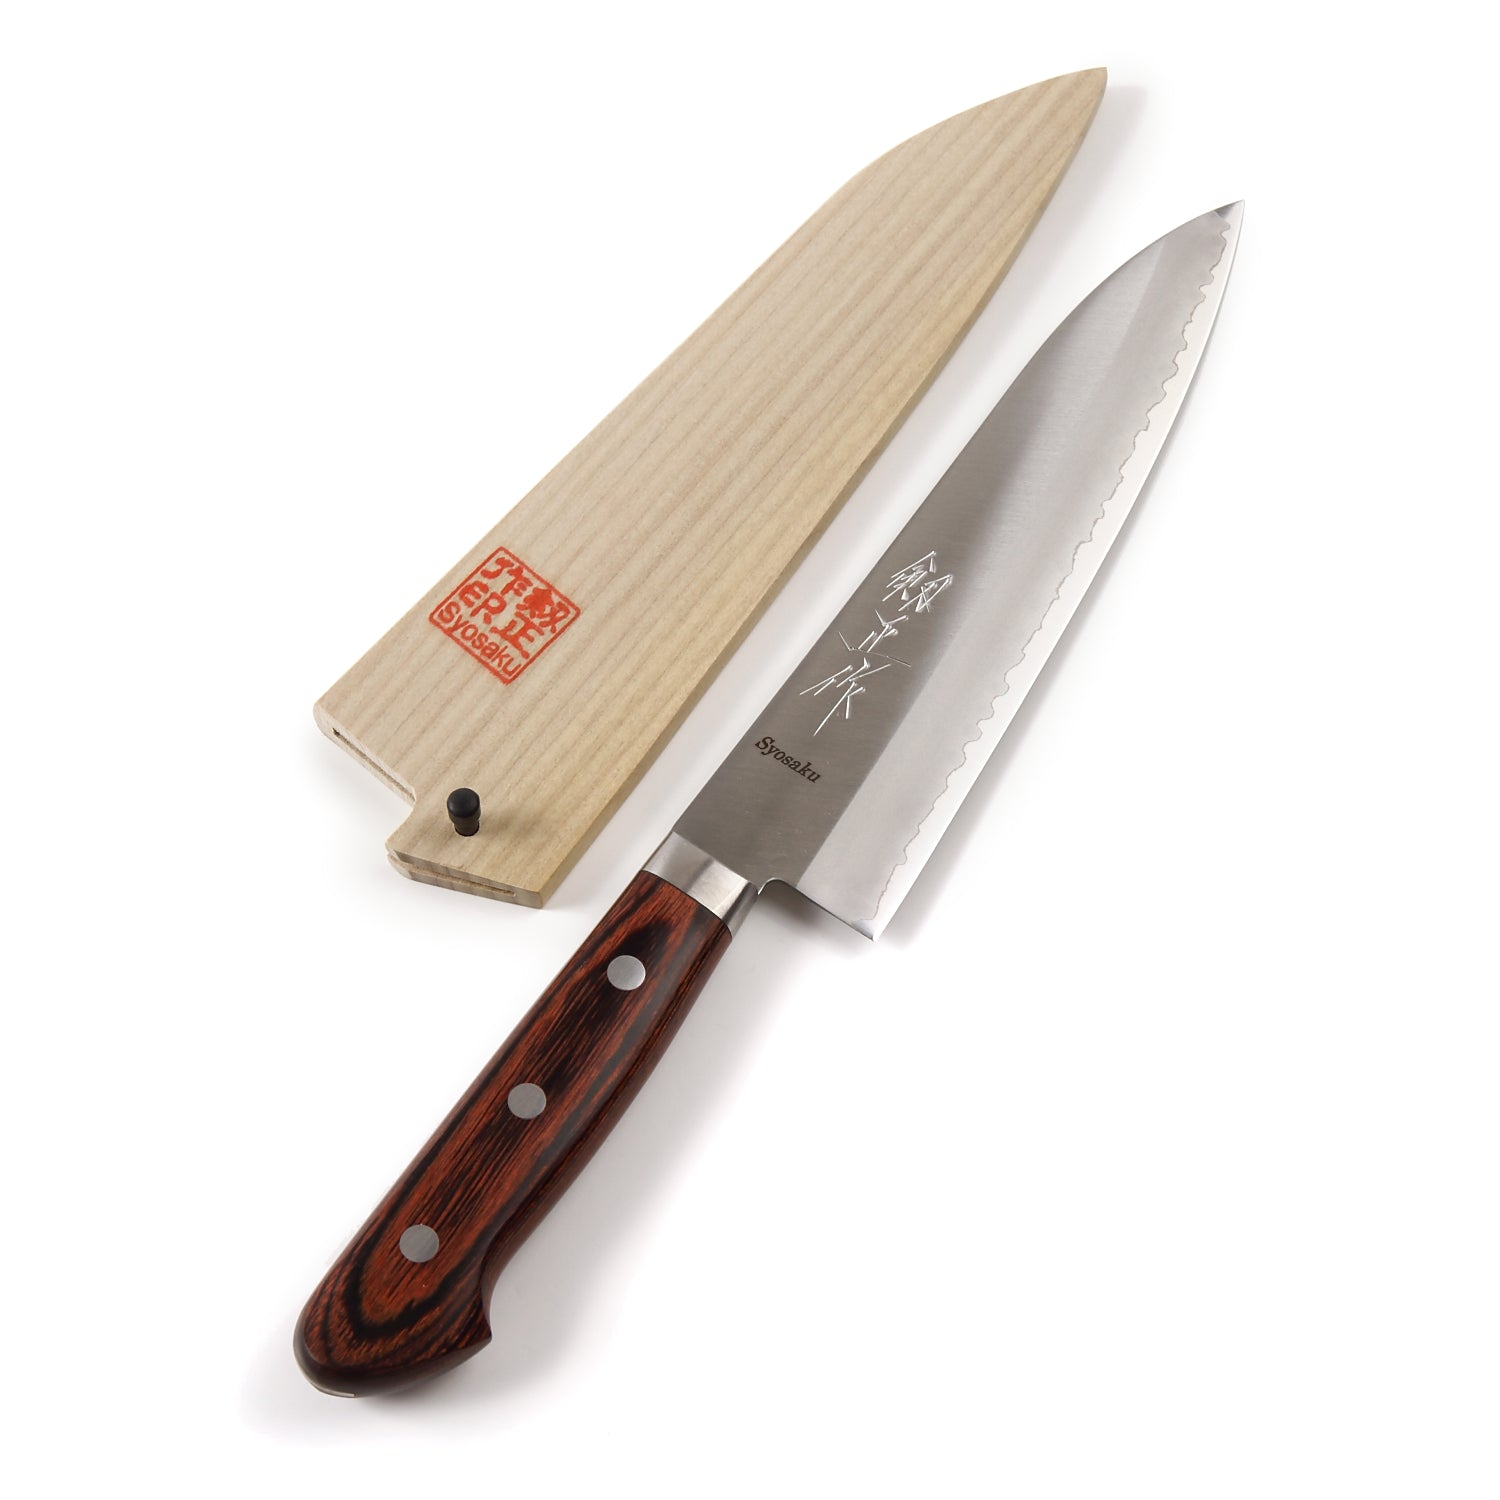 Syosaku Japanese Chef Knife VG-1 Gold Stainless Steel Mahogany Handle, Gyuto 7-inch (180mm) with Magnolia Wood Sheath Saya Cover